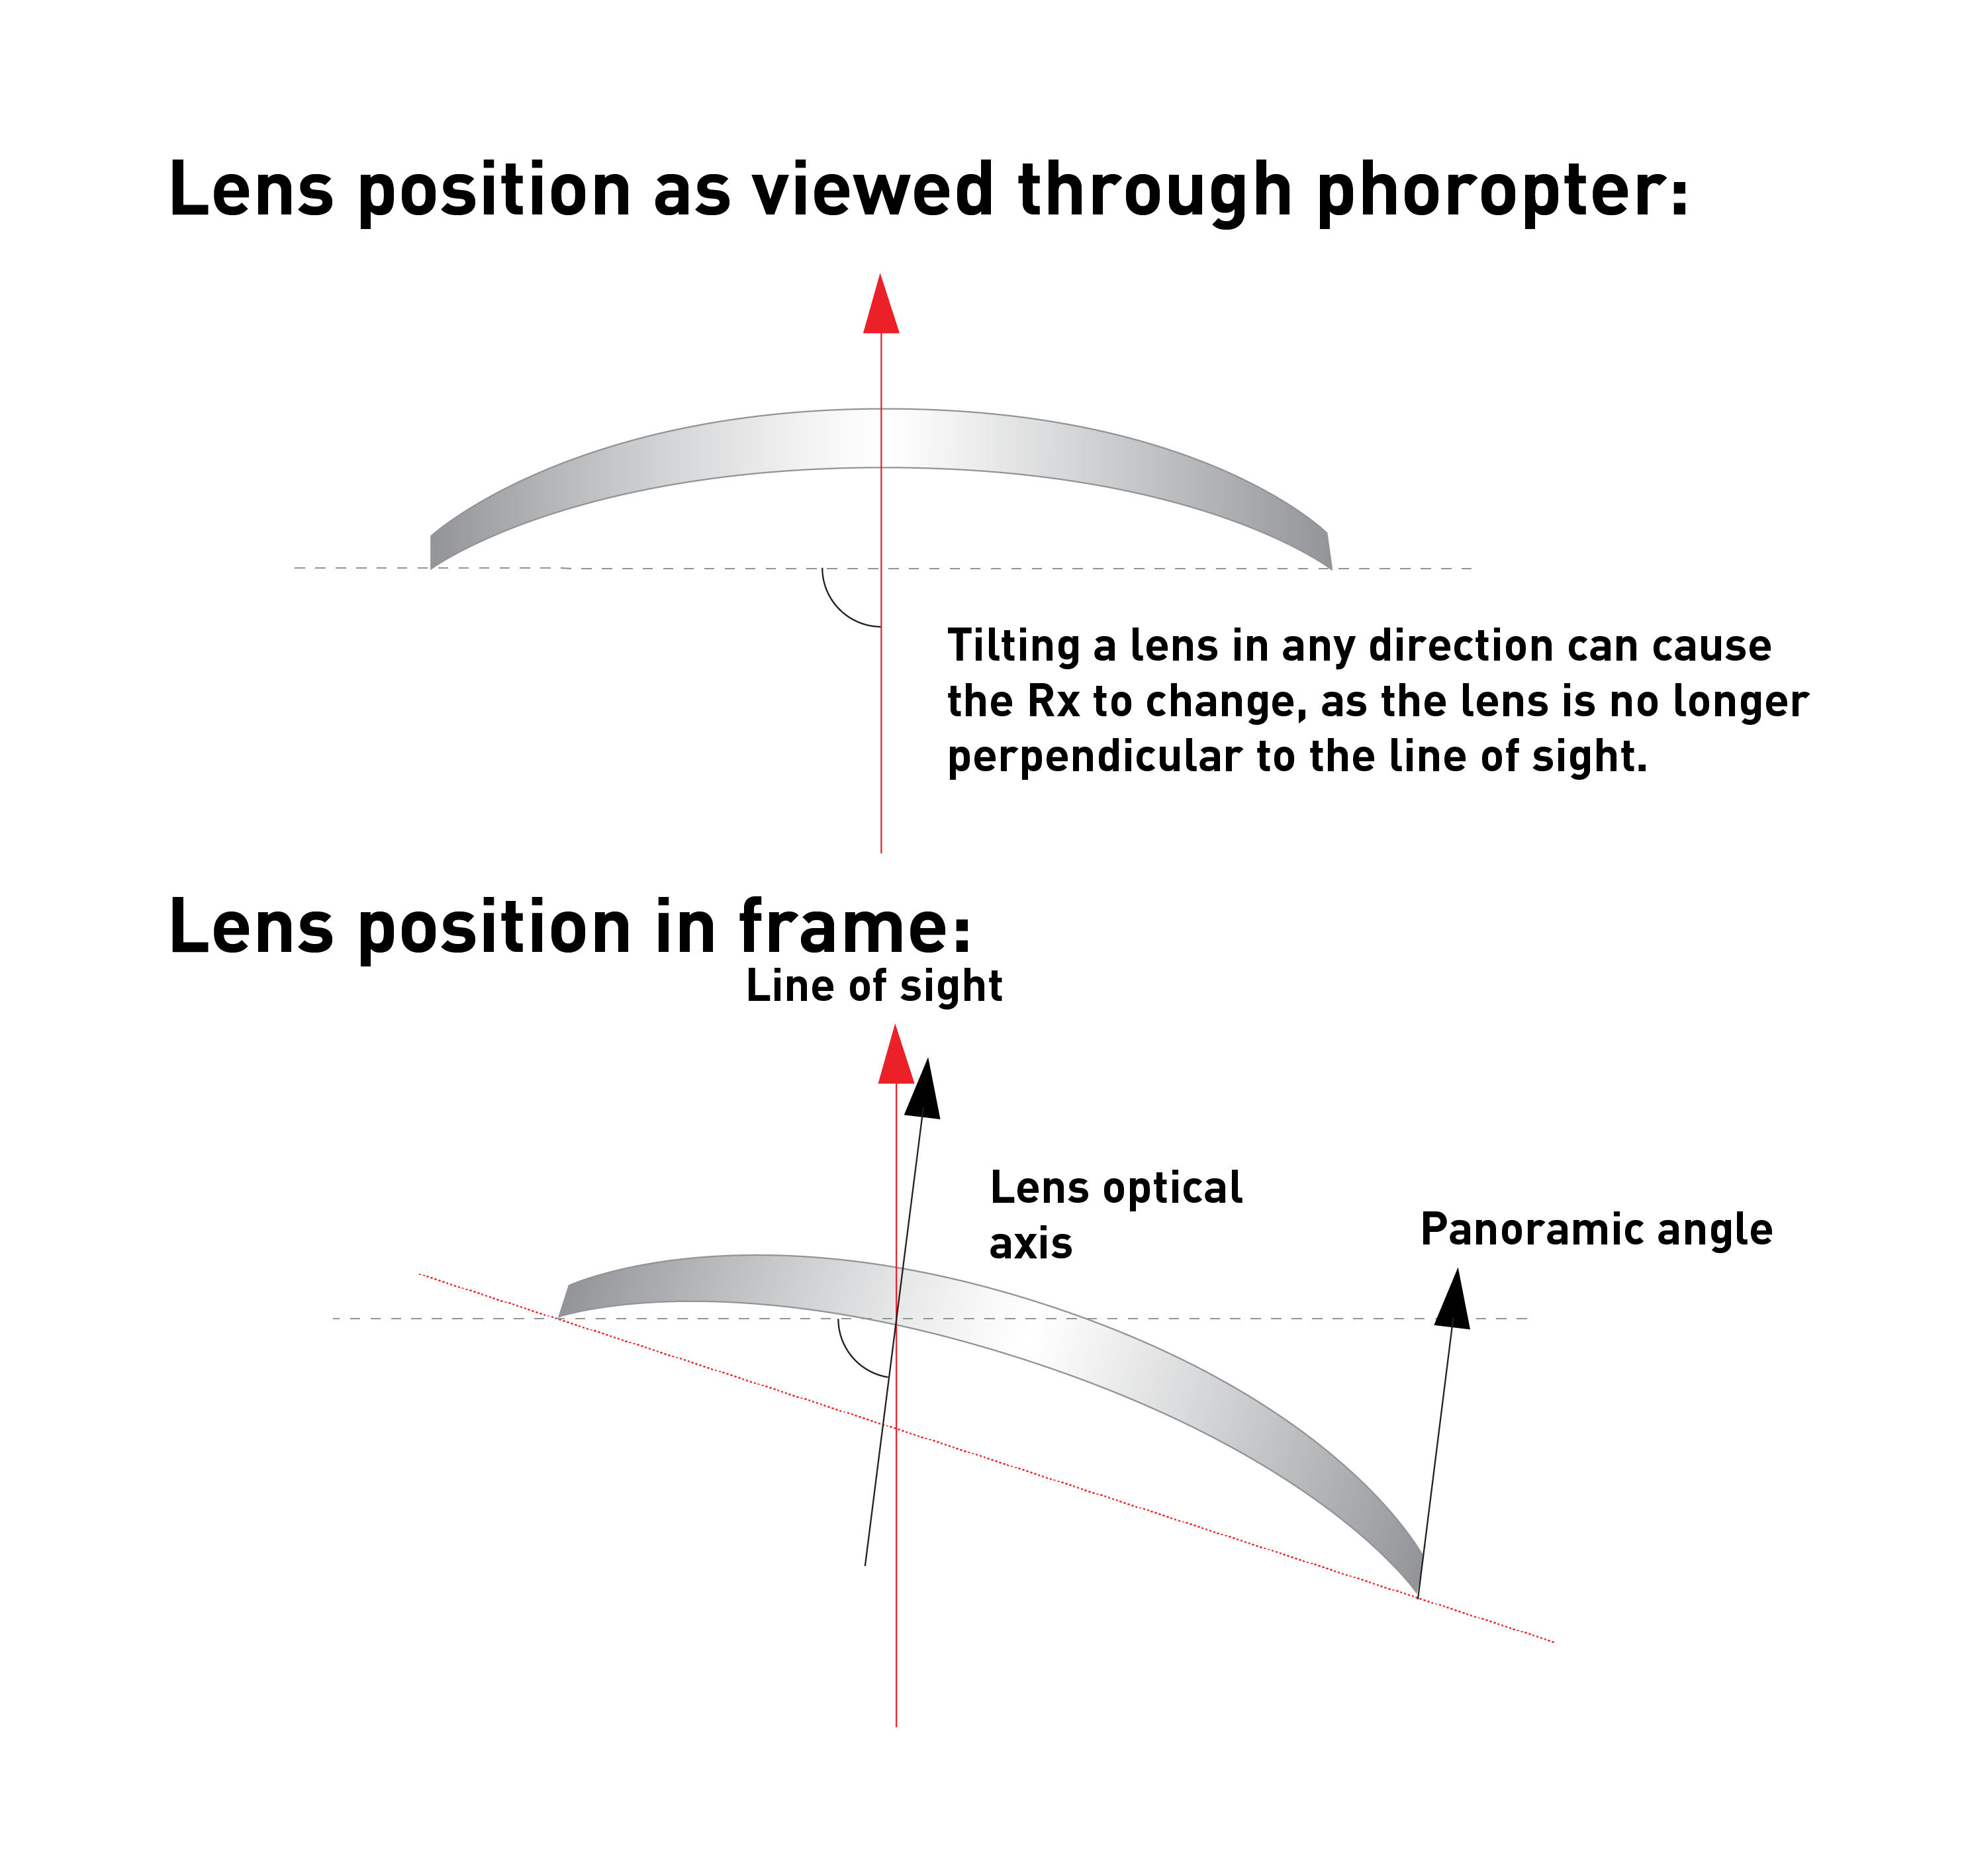 A2 As Worn Line graphic